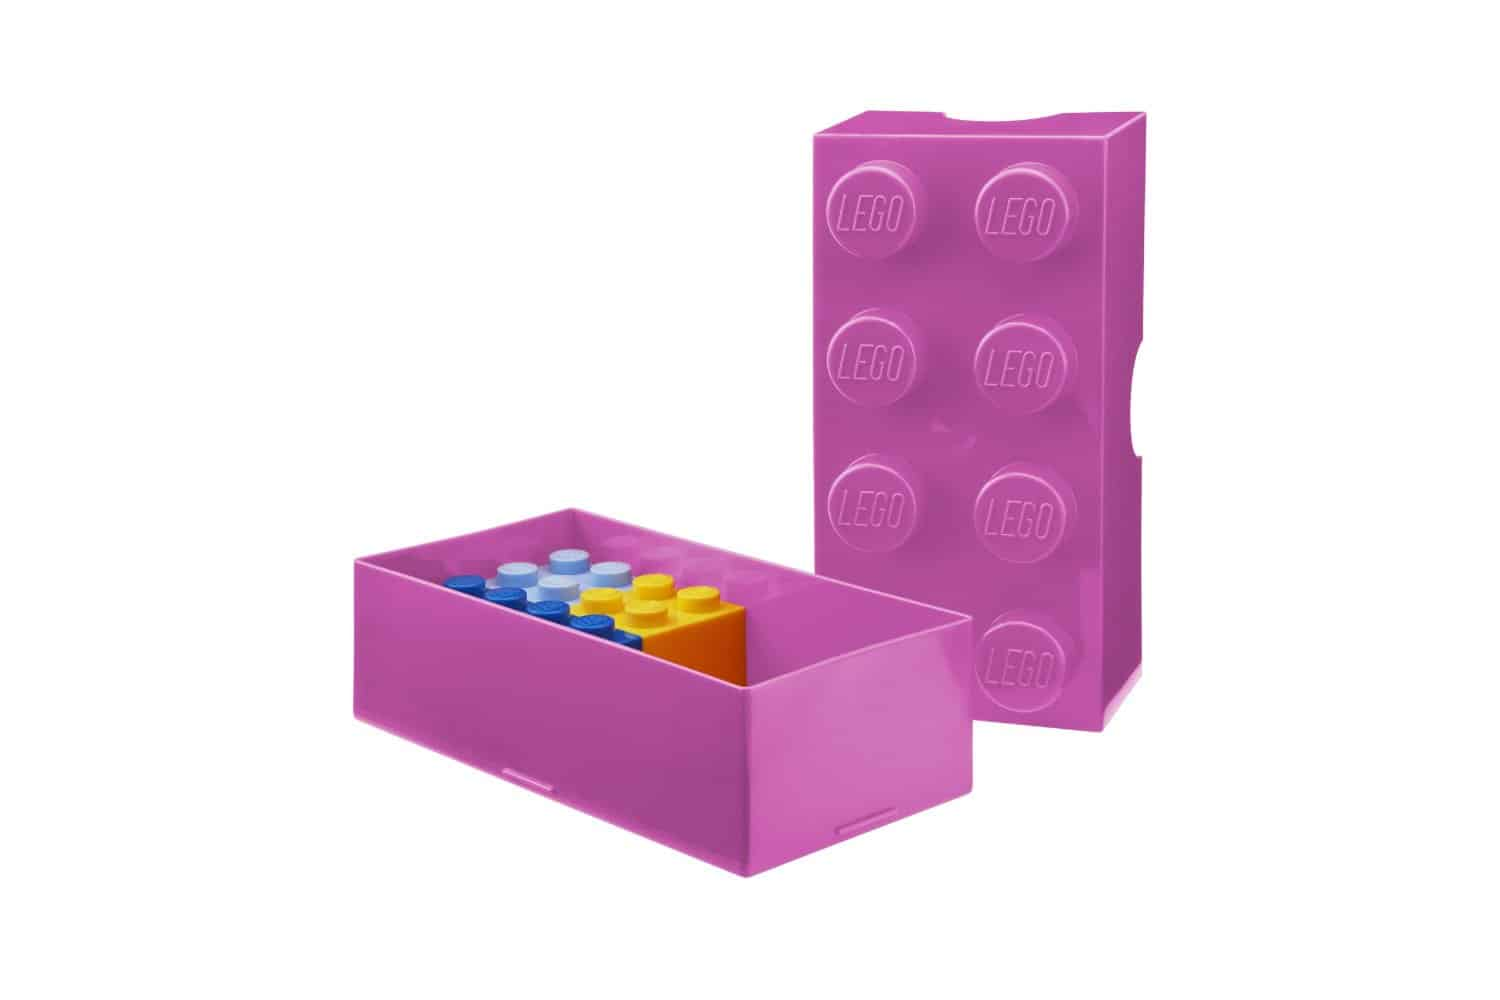 Lego Bento Lunch Box Pink Cute Buy Gift Idea for Her